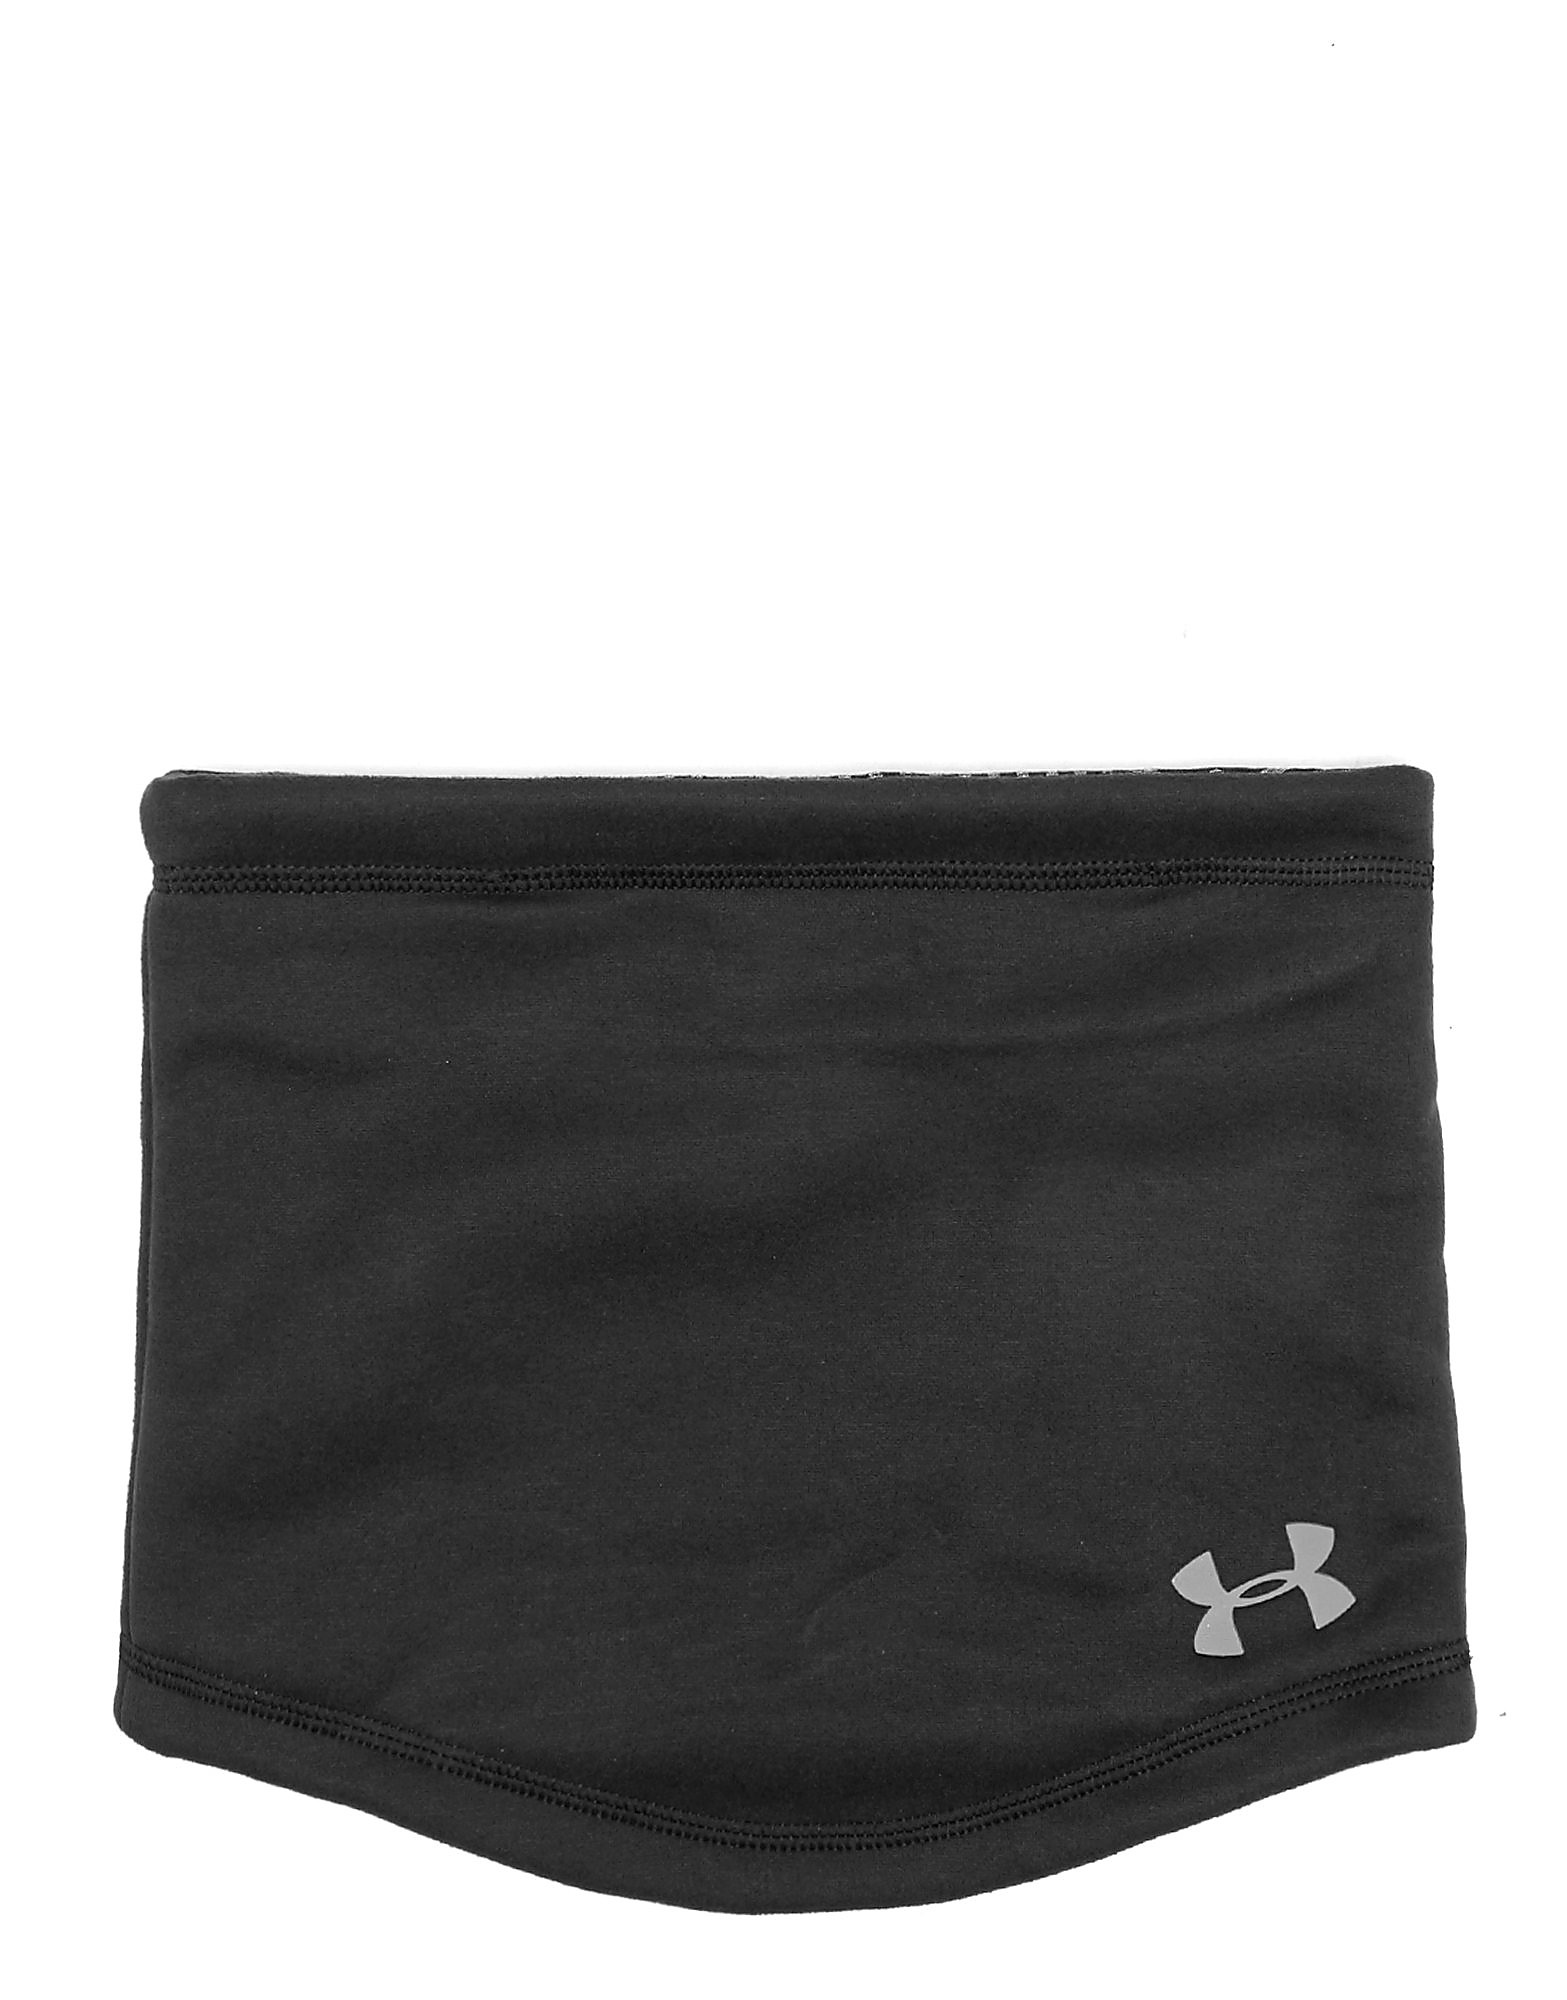 Under Armour Elements Fleece Neck Gaiter